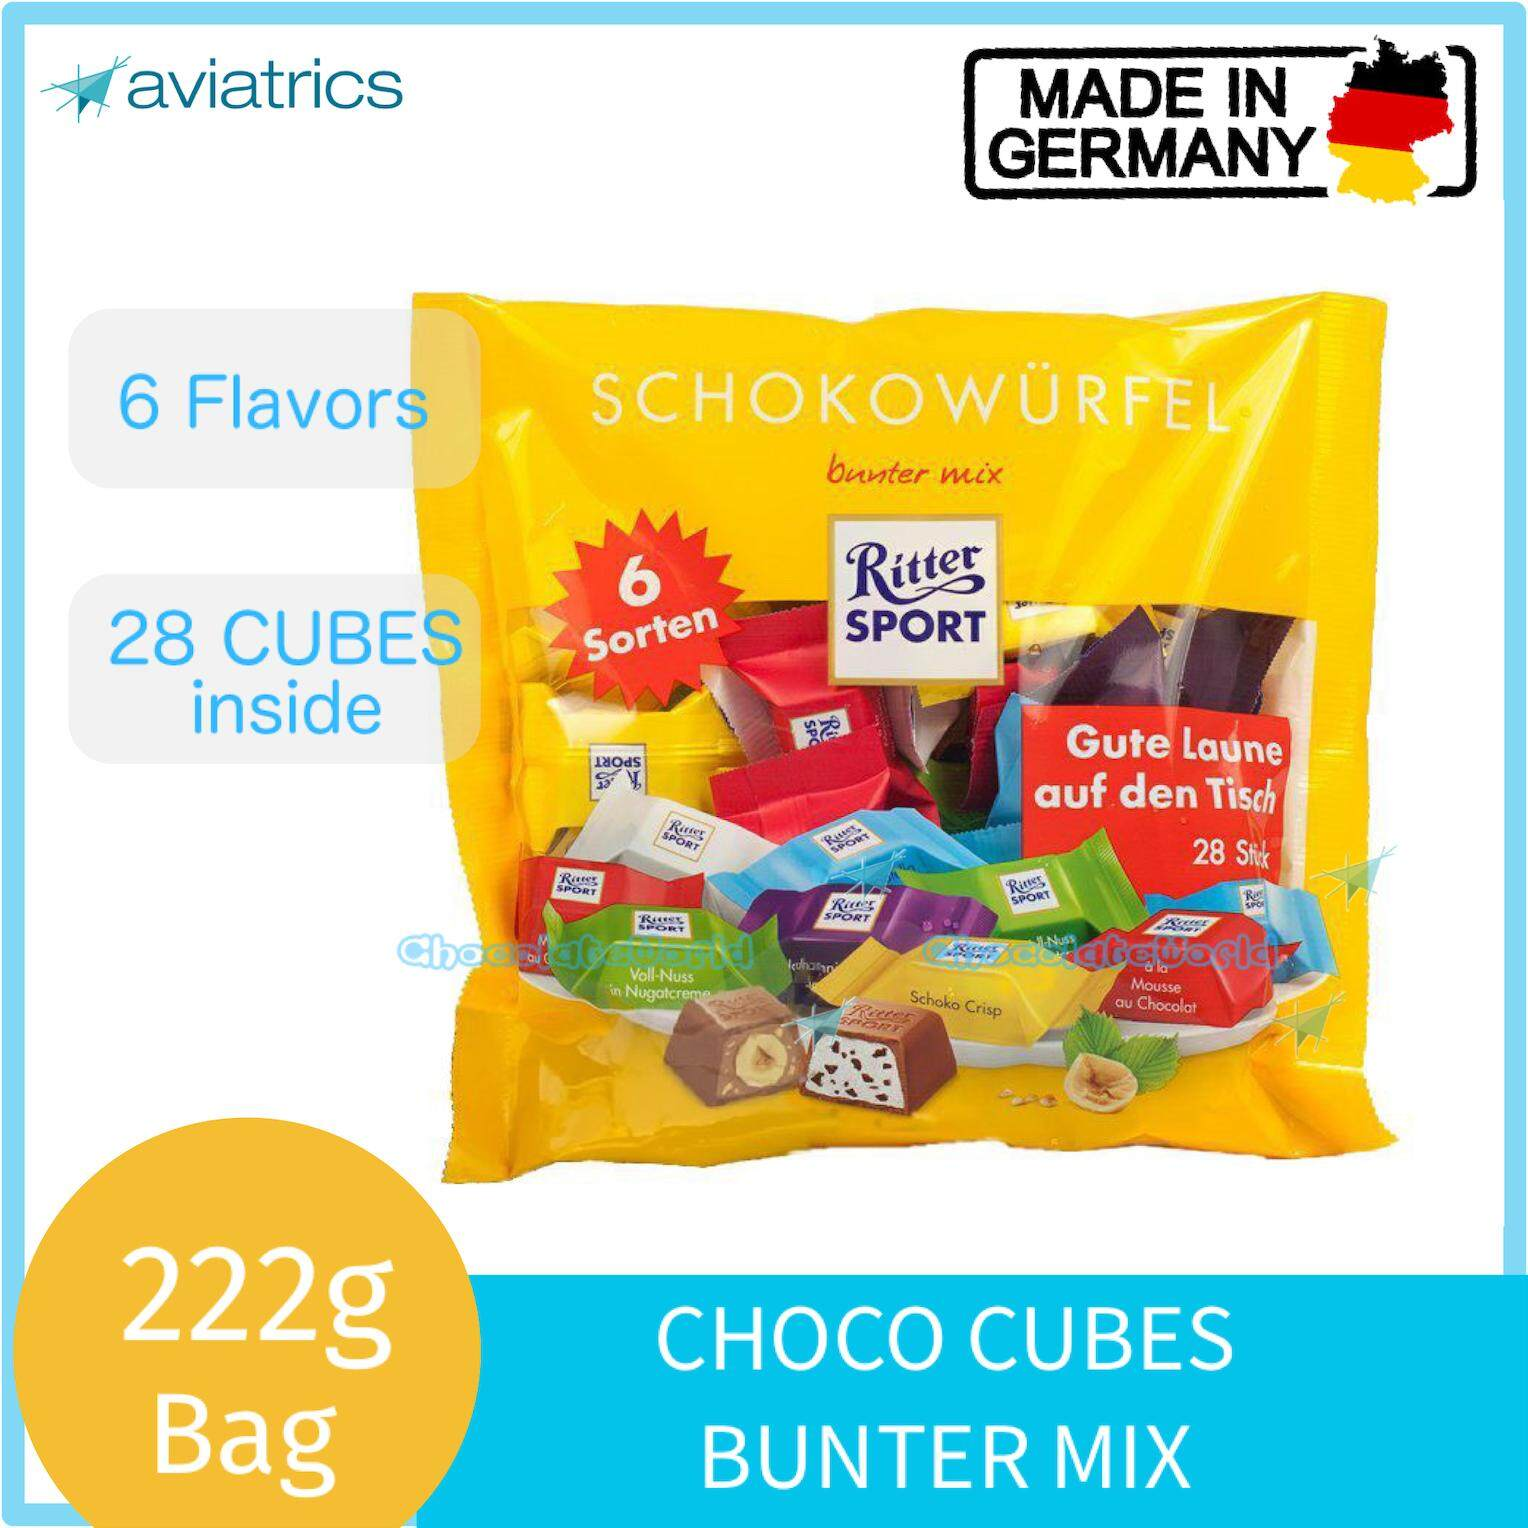 Ritter Sport Choco Cubes Bunter Mix 222g (Made in Germany)